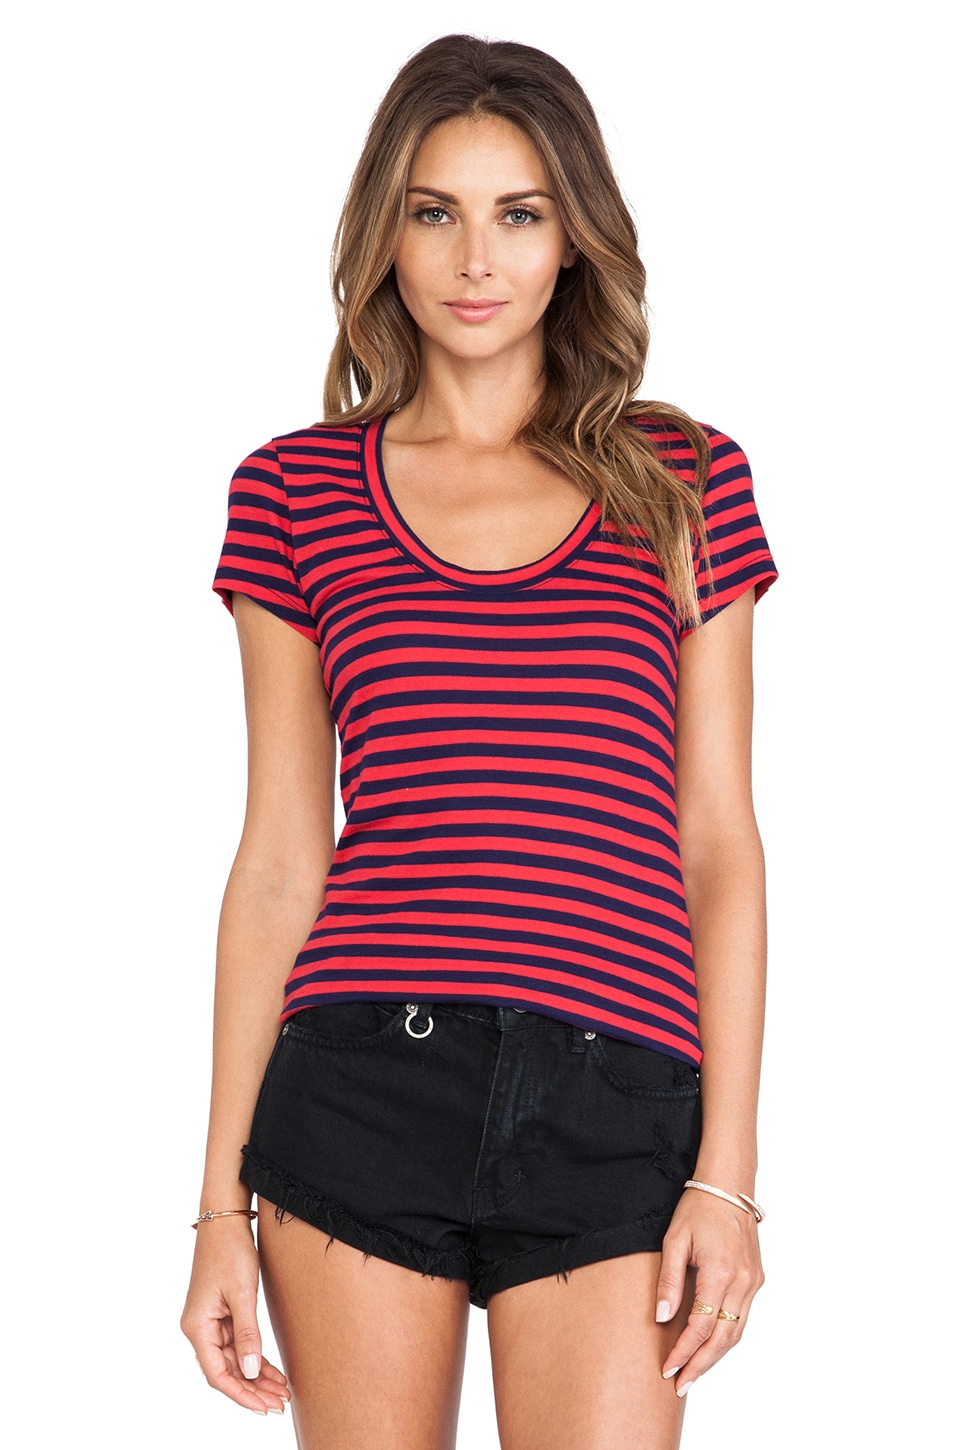 Bobi Light Weight Jersey Striped Cap Sleeve Tee in Bali & Yacht